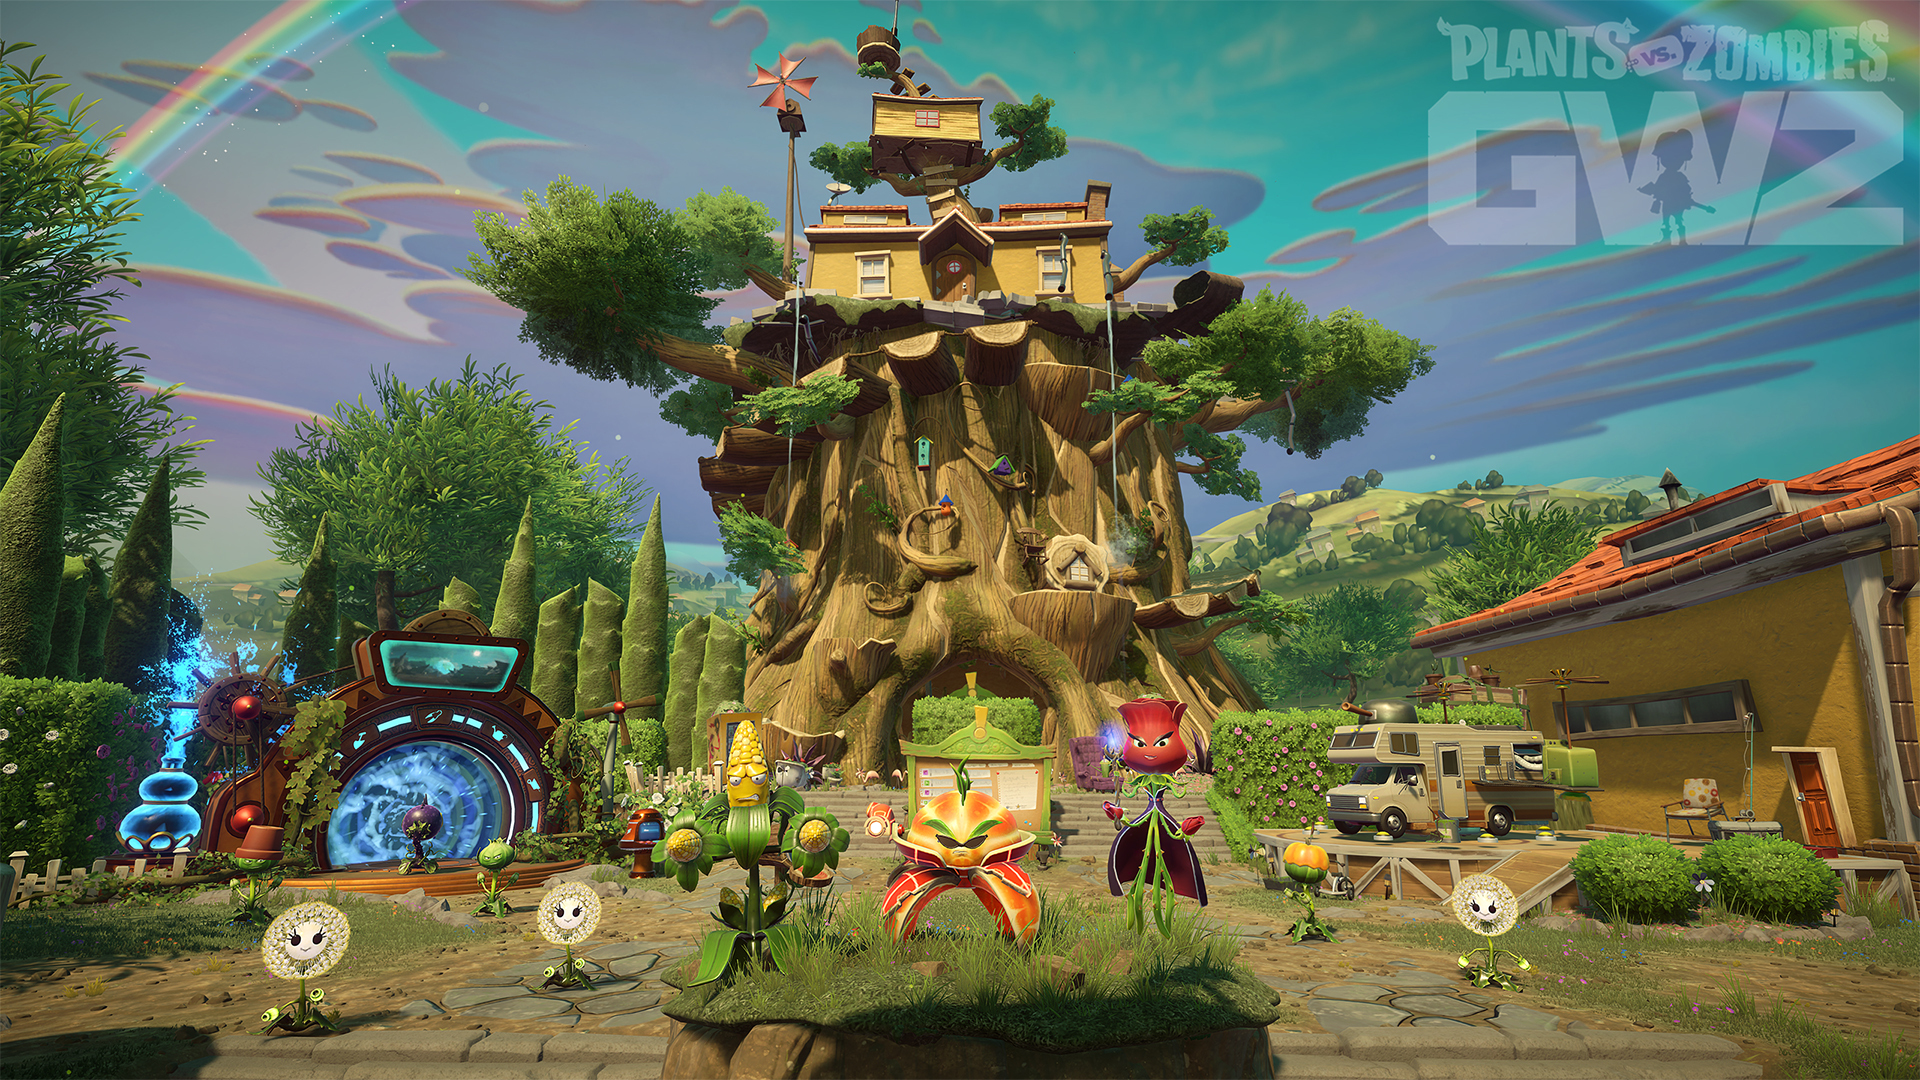 plants vs zombies garden warfare 2 introduces more ways to play